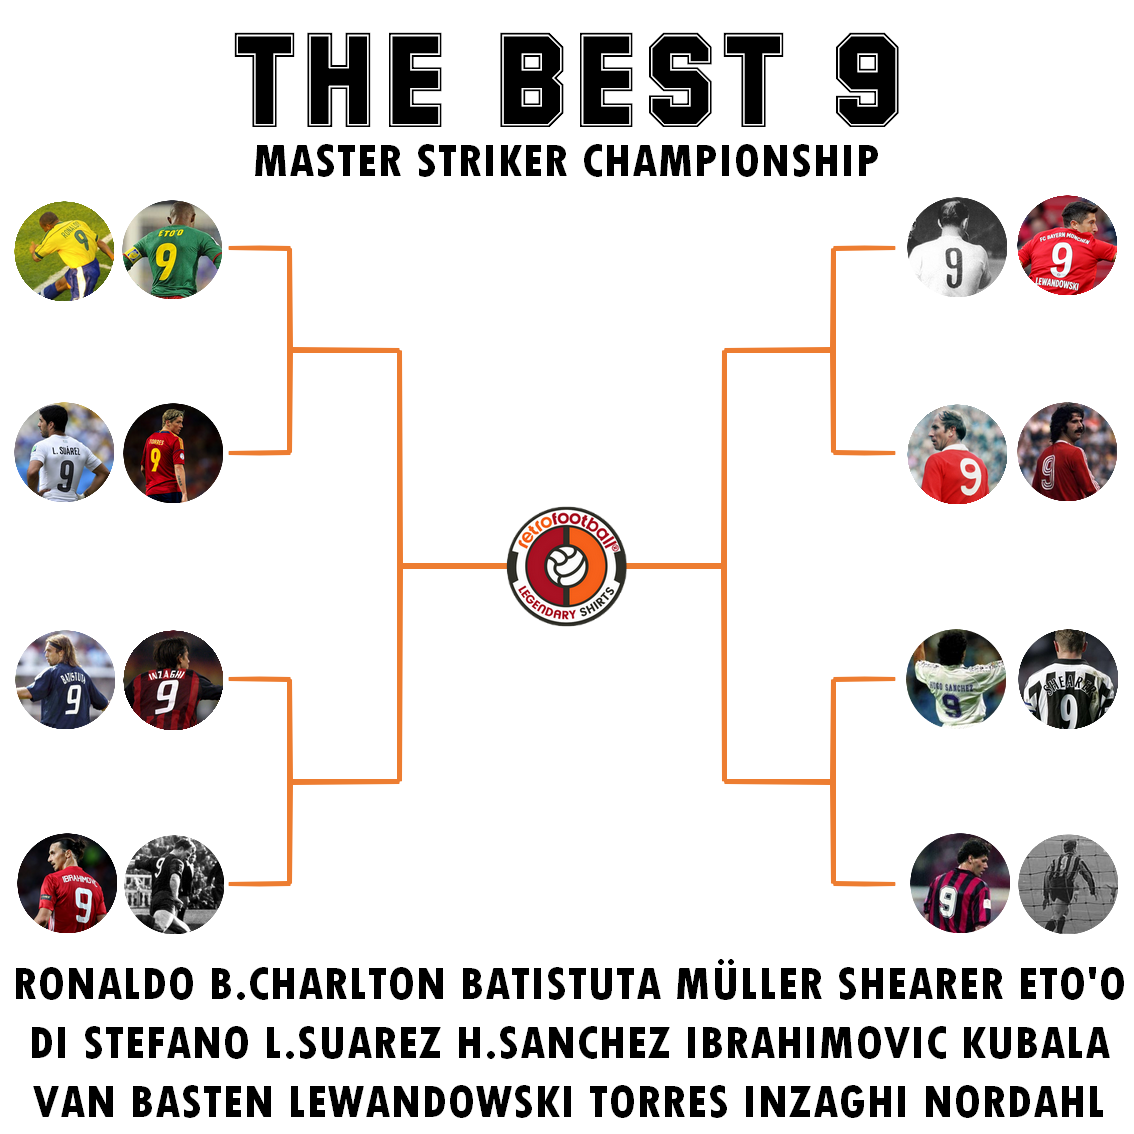 Tabellone The Best 9 - Master Striker Championship